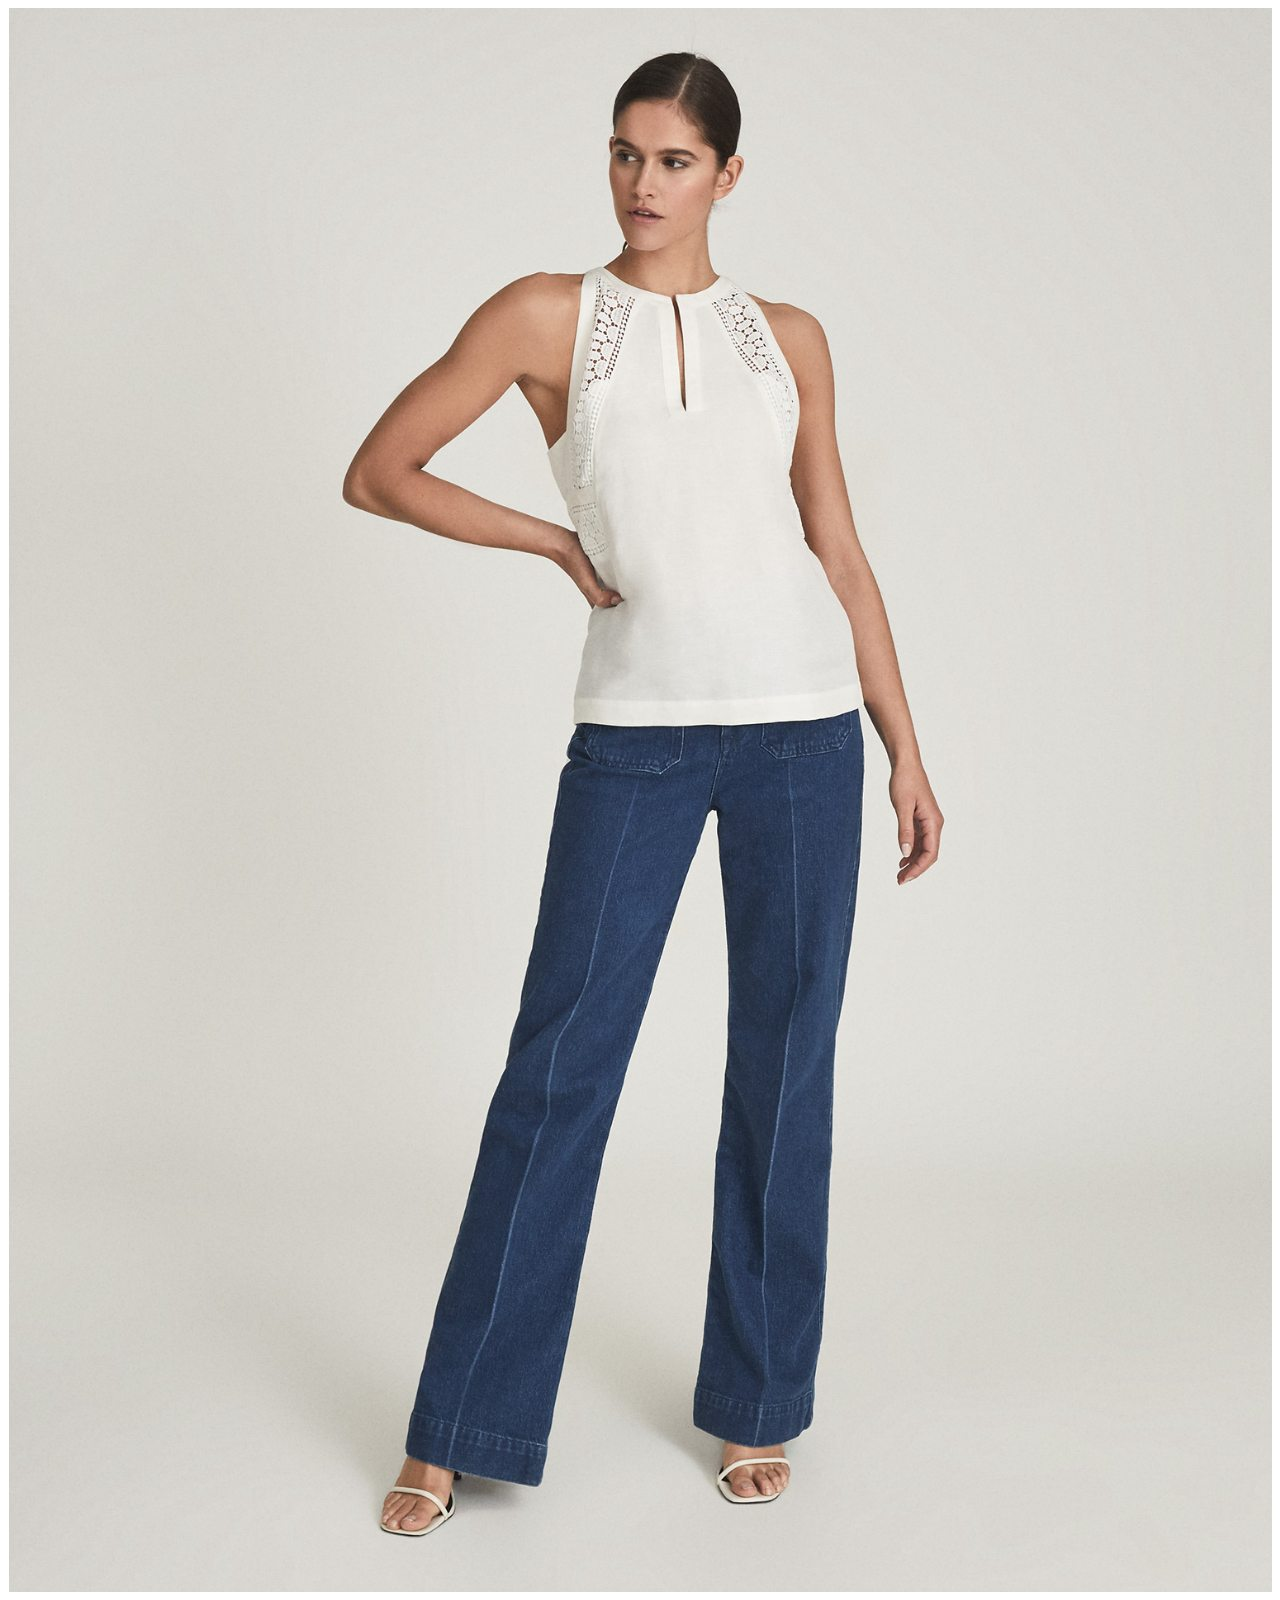 Lois White Embroidered Sleeveless Top